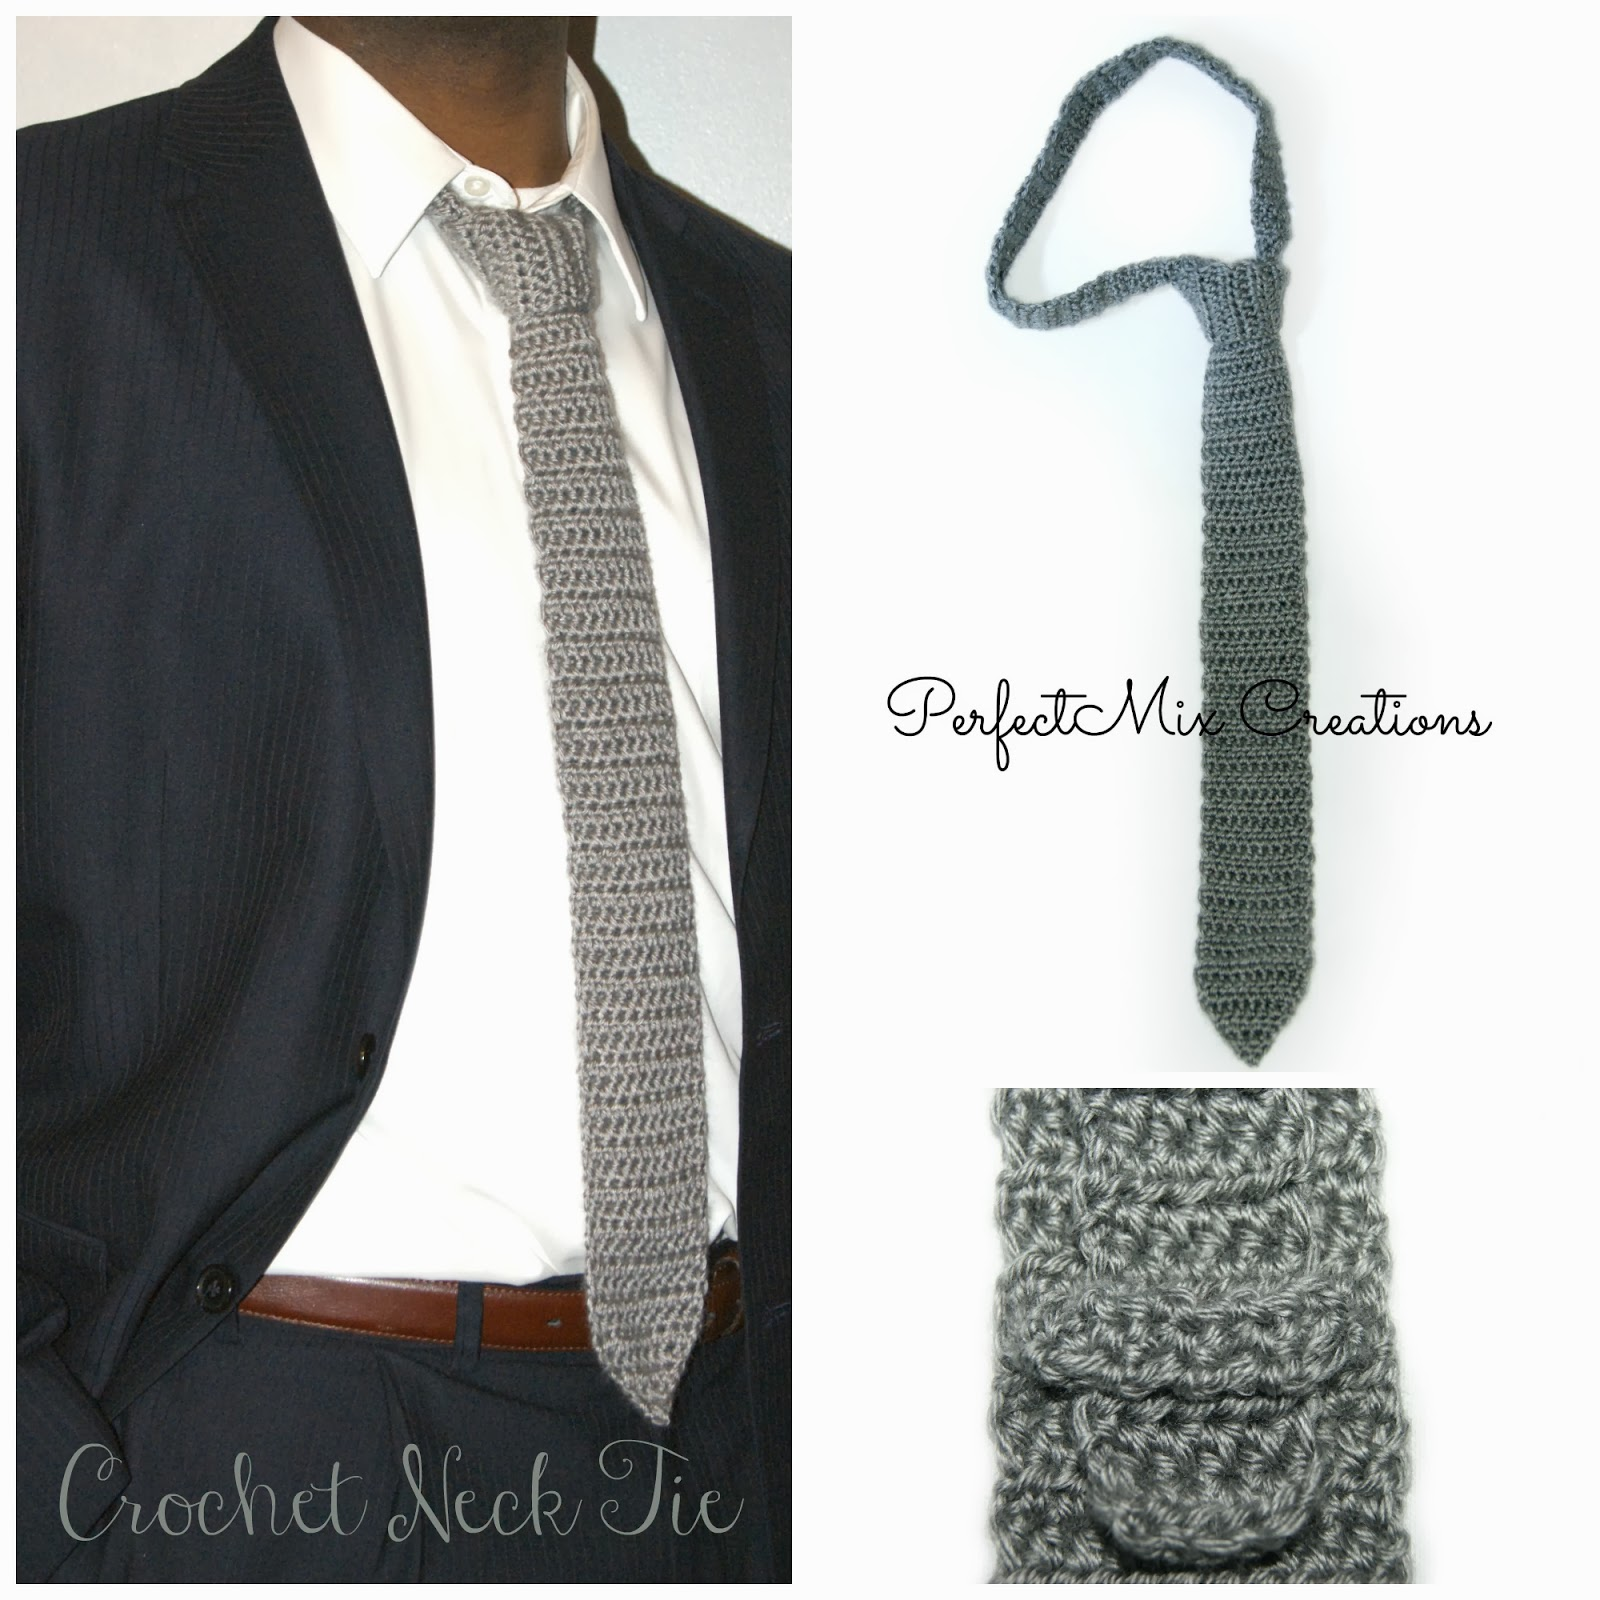 Mixin It Up With Daperfectmix Crochet Neck Tie Pattern